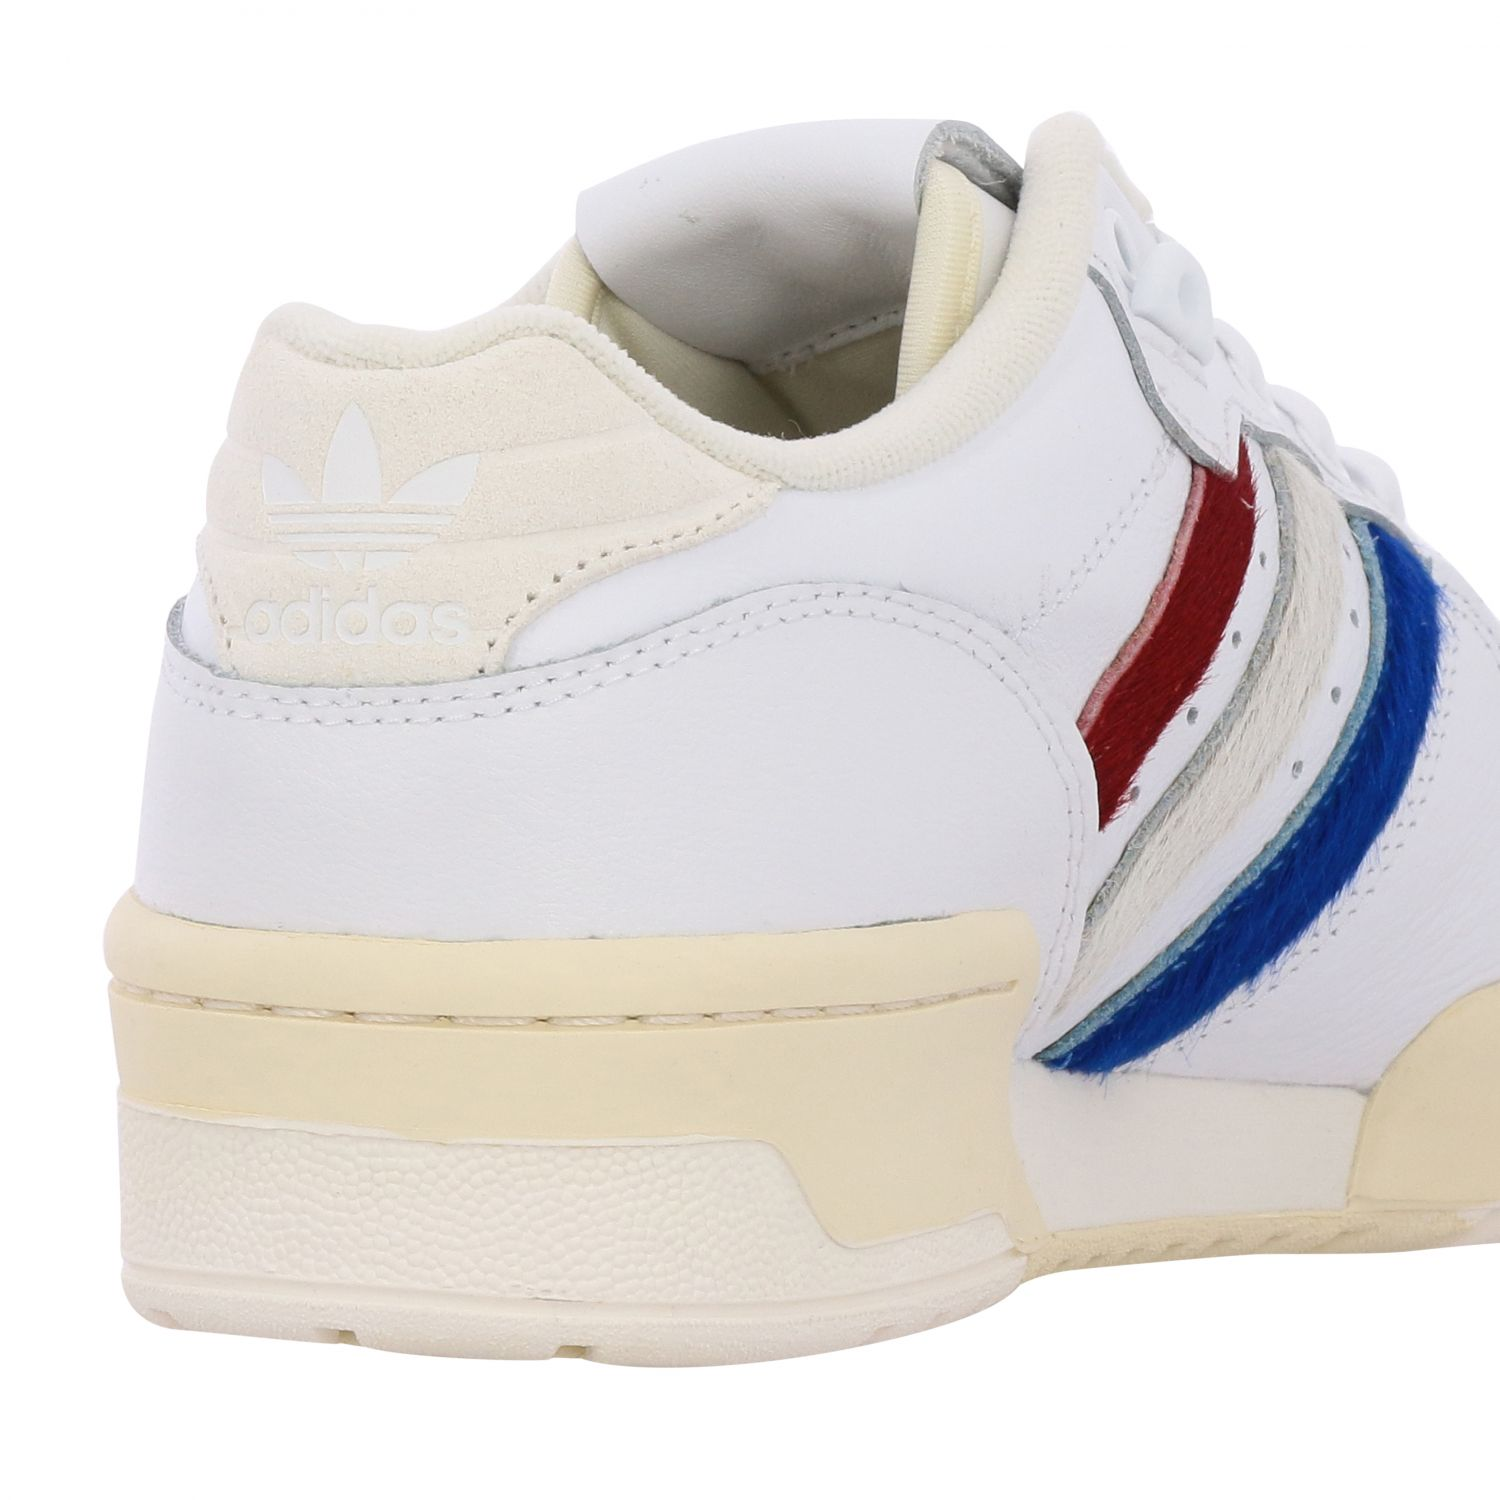 Sneakers Adidas Originals: Shoes men Adidas Originals white 5